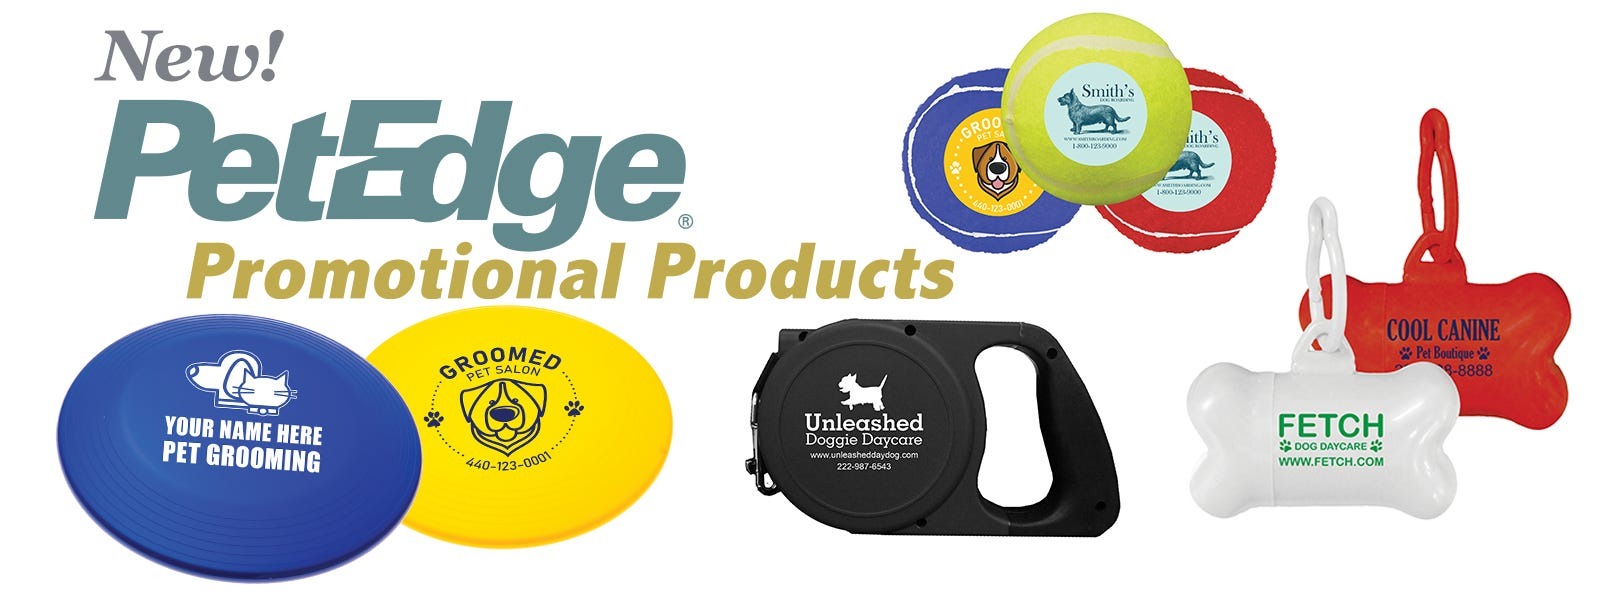 New! PetEdge Promotional Products!